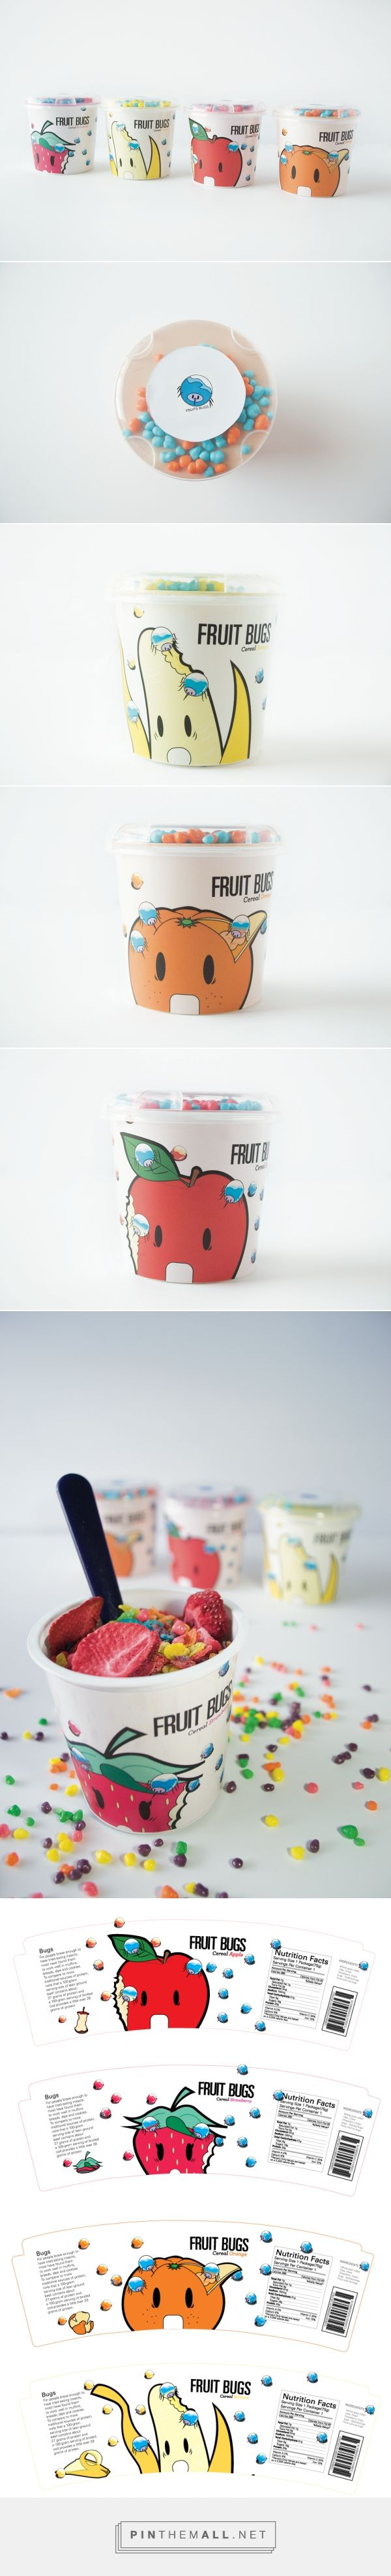 Graphic design, illustration and packaging for FRUIT BUGS on Behance by Kaito…